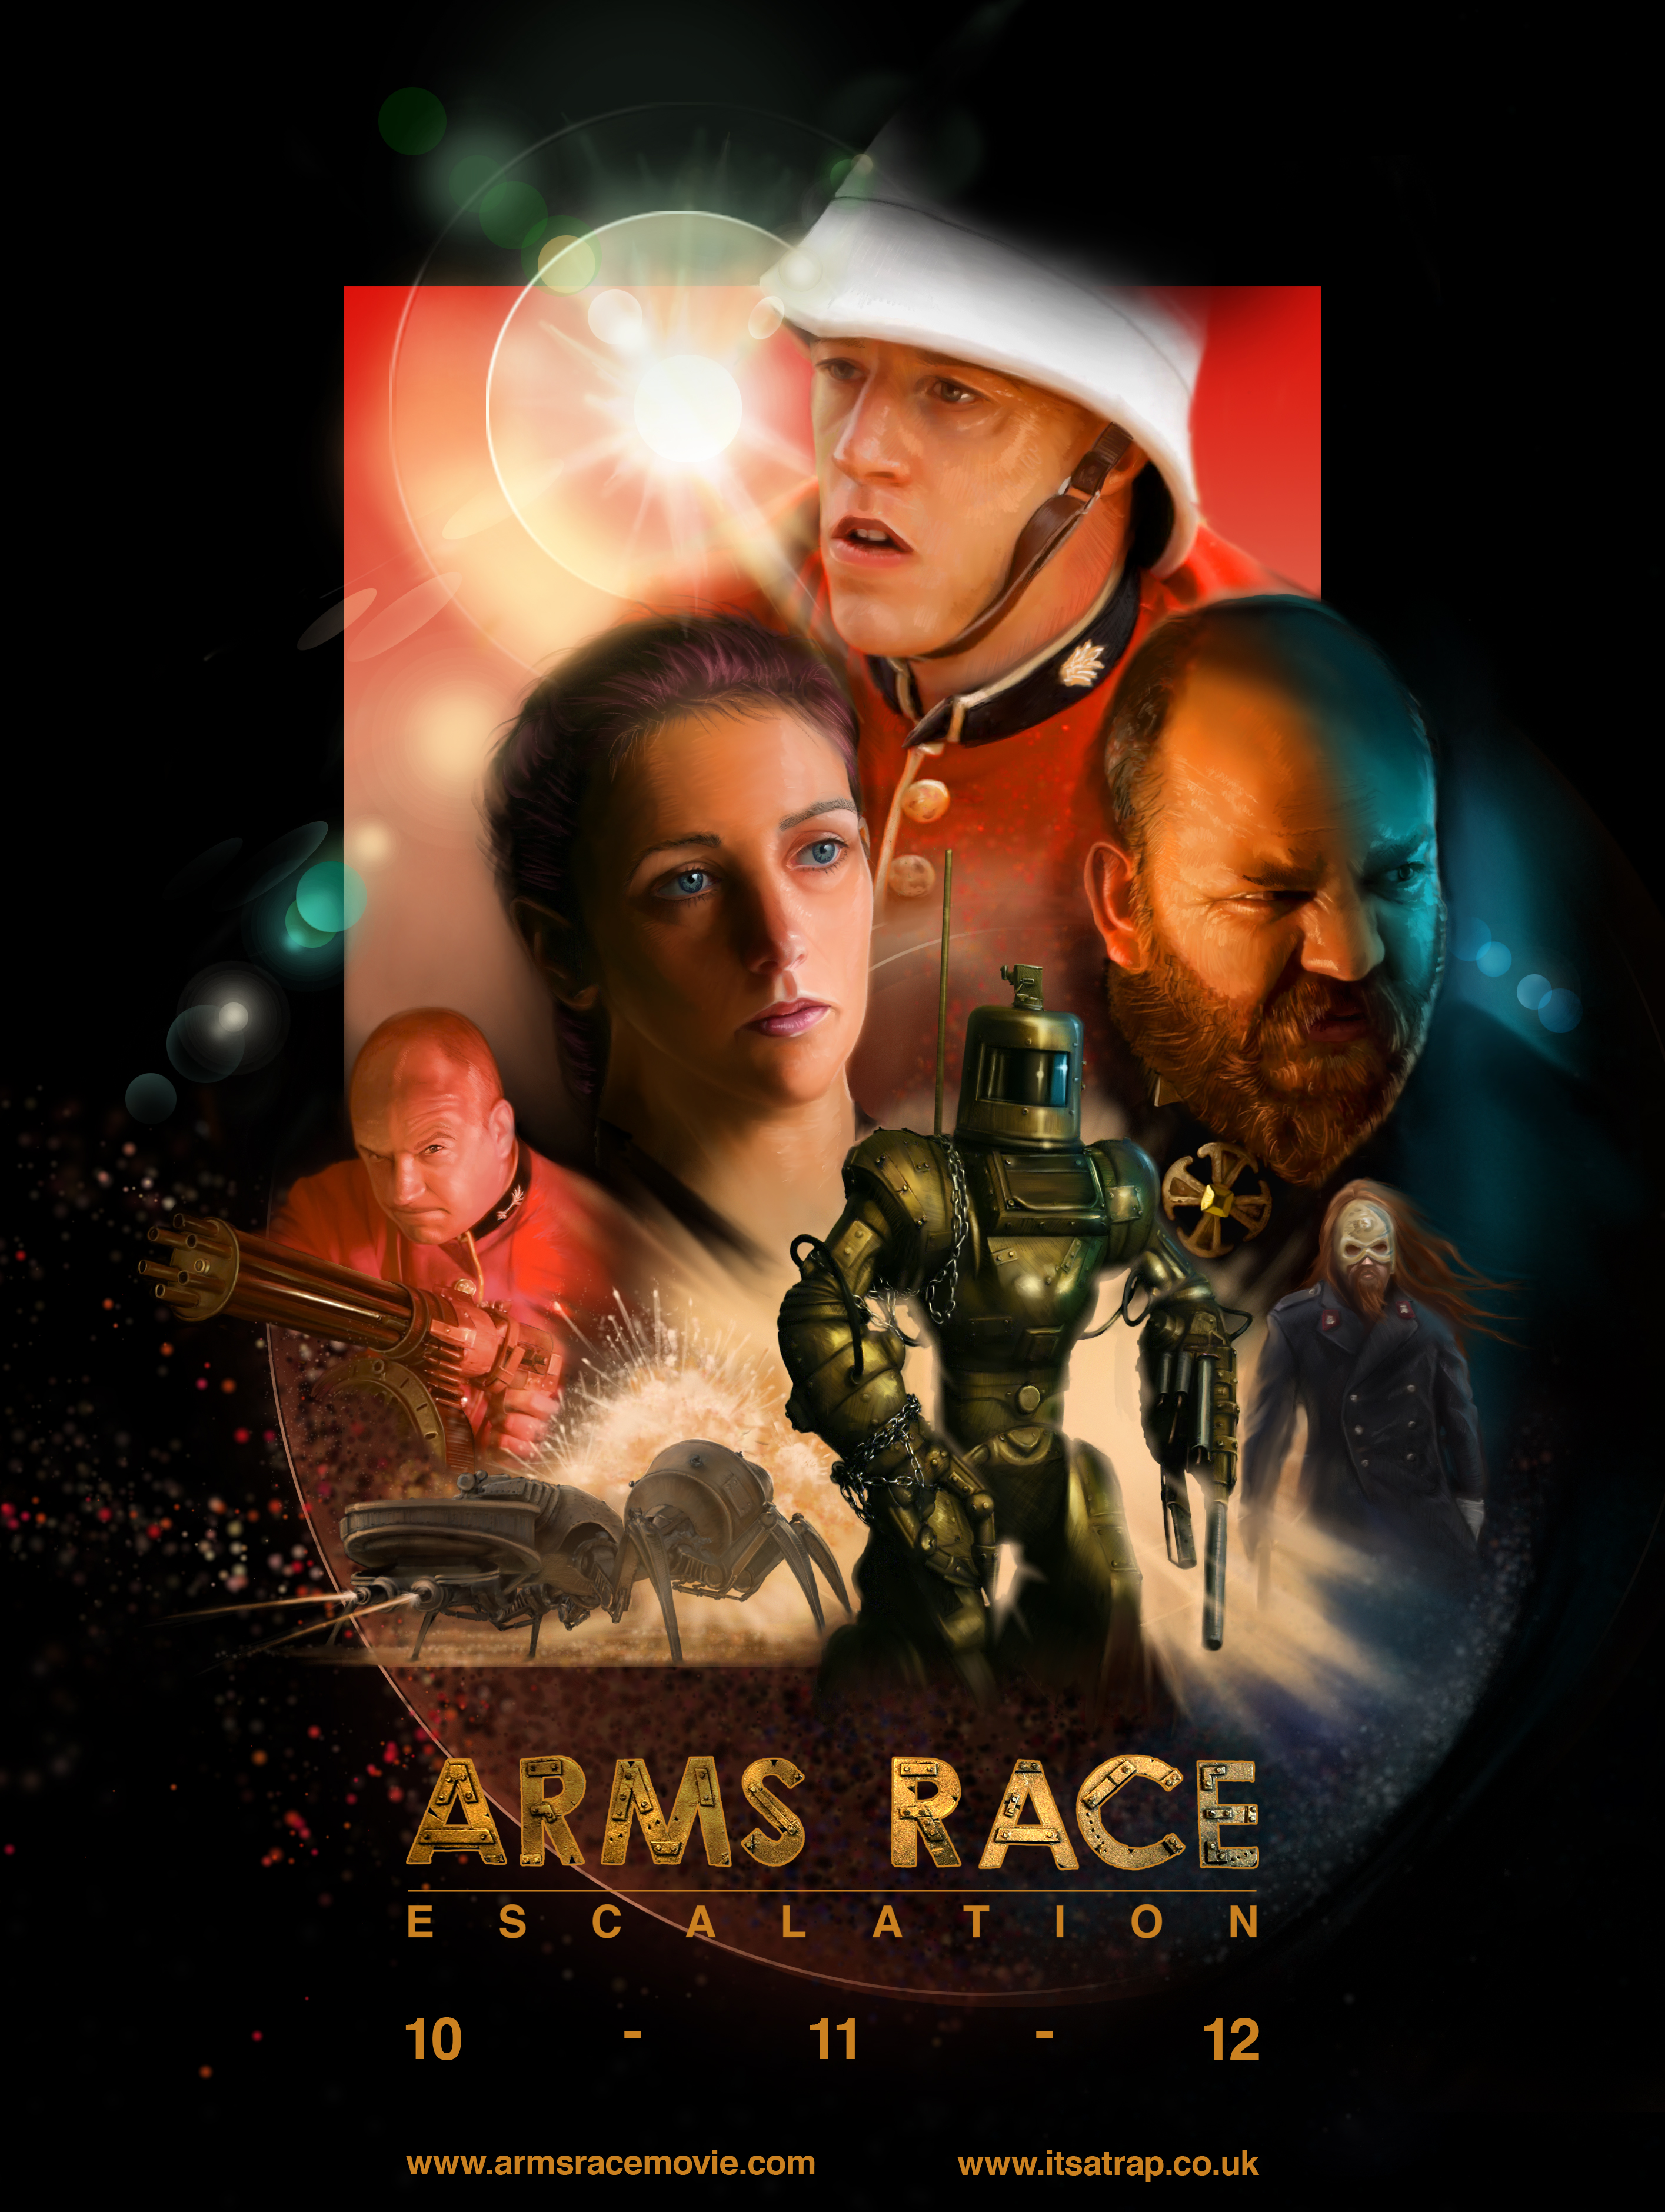 Arms Race: Escalation